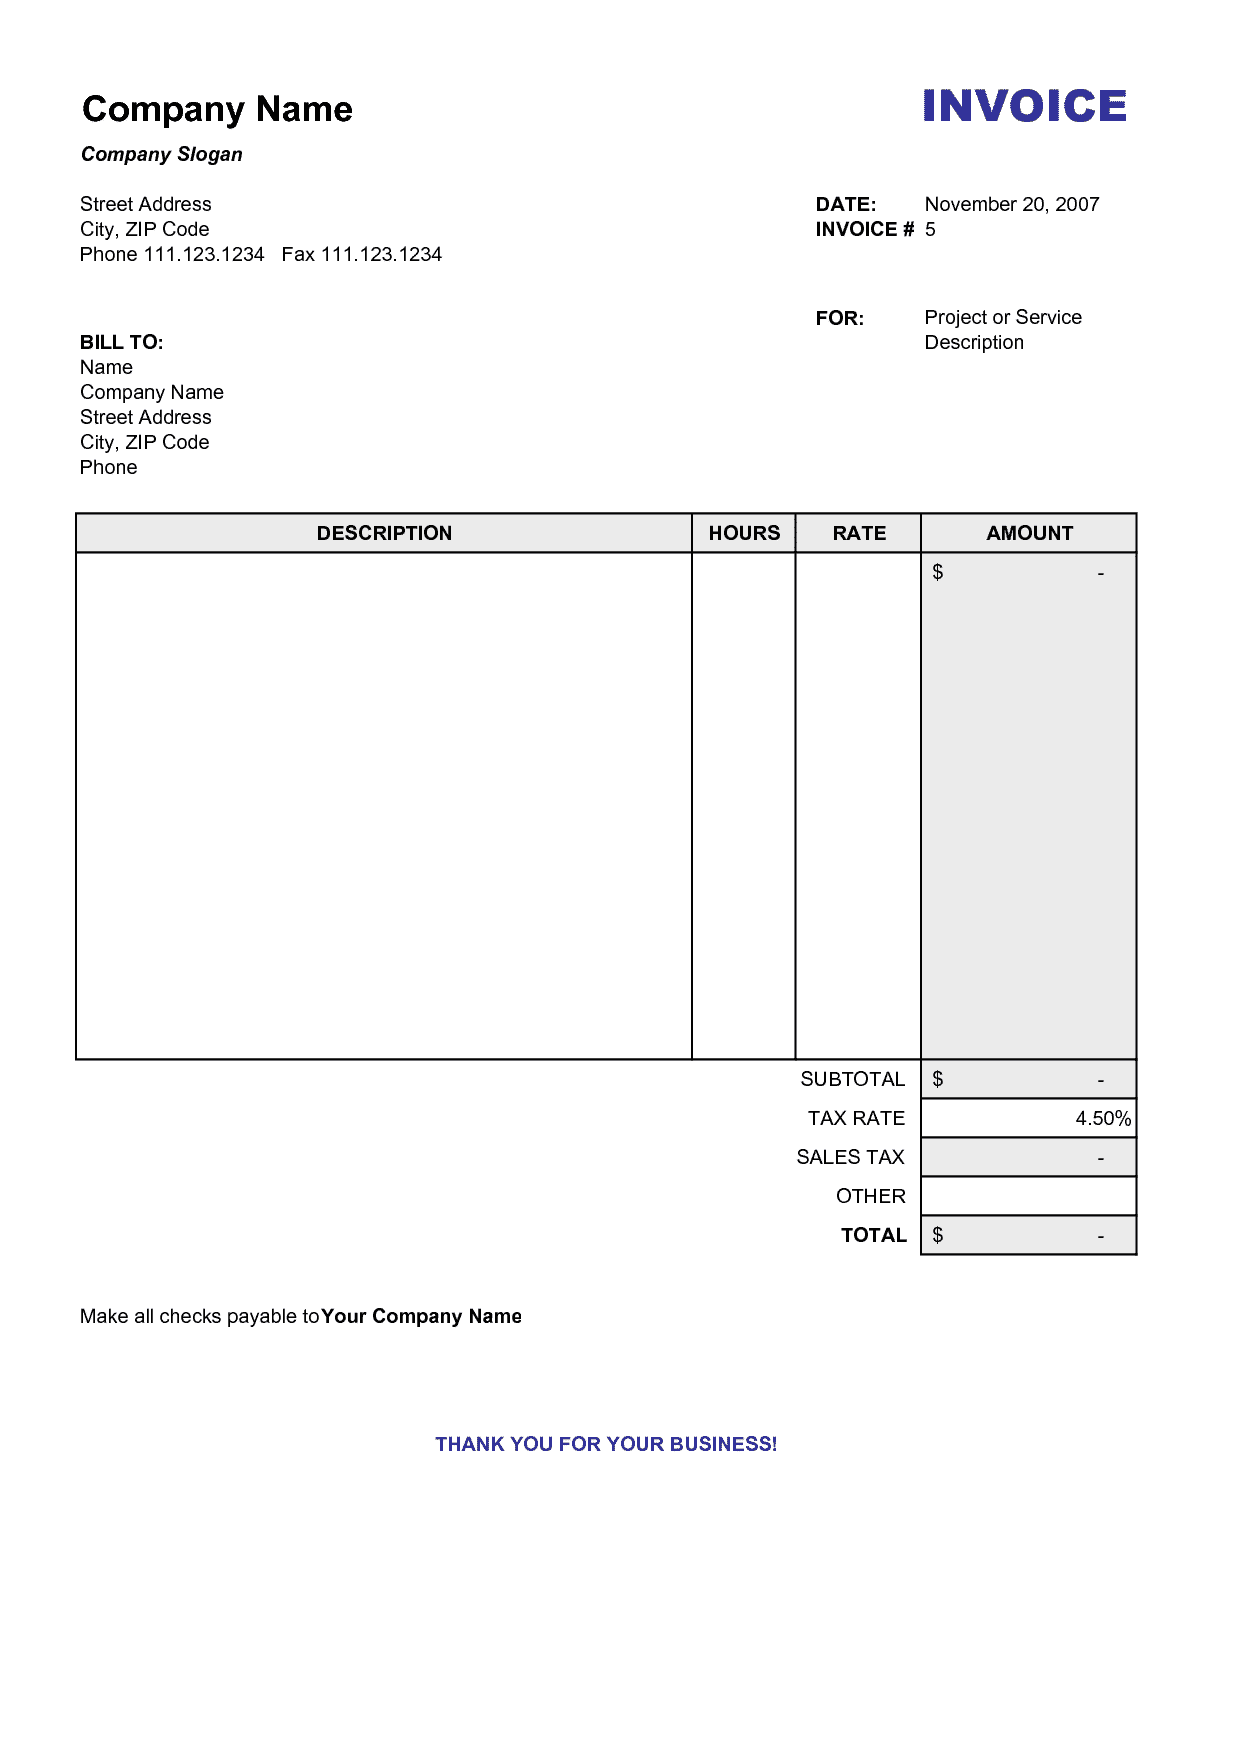 Empty Invoice Template and Blank Invoice Excel Free to Do List